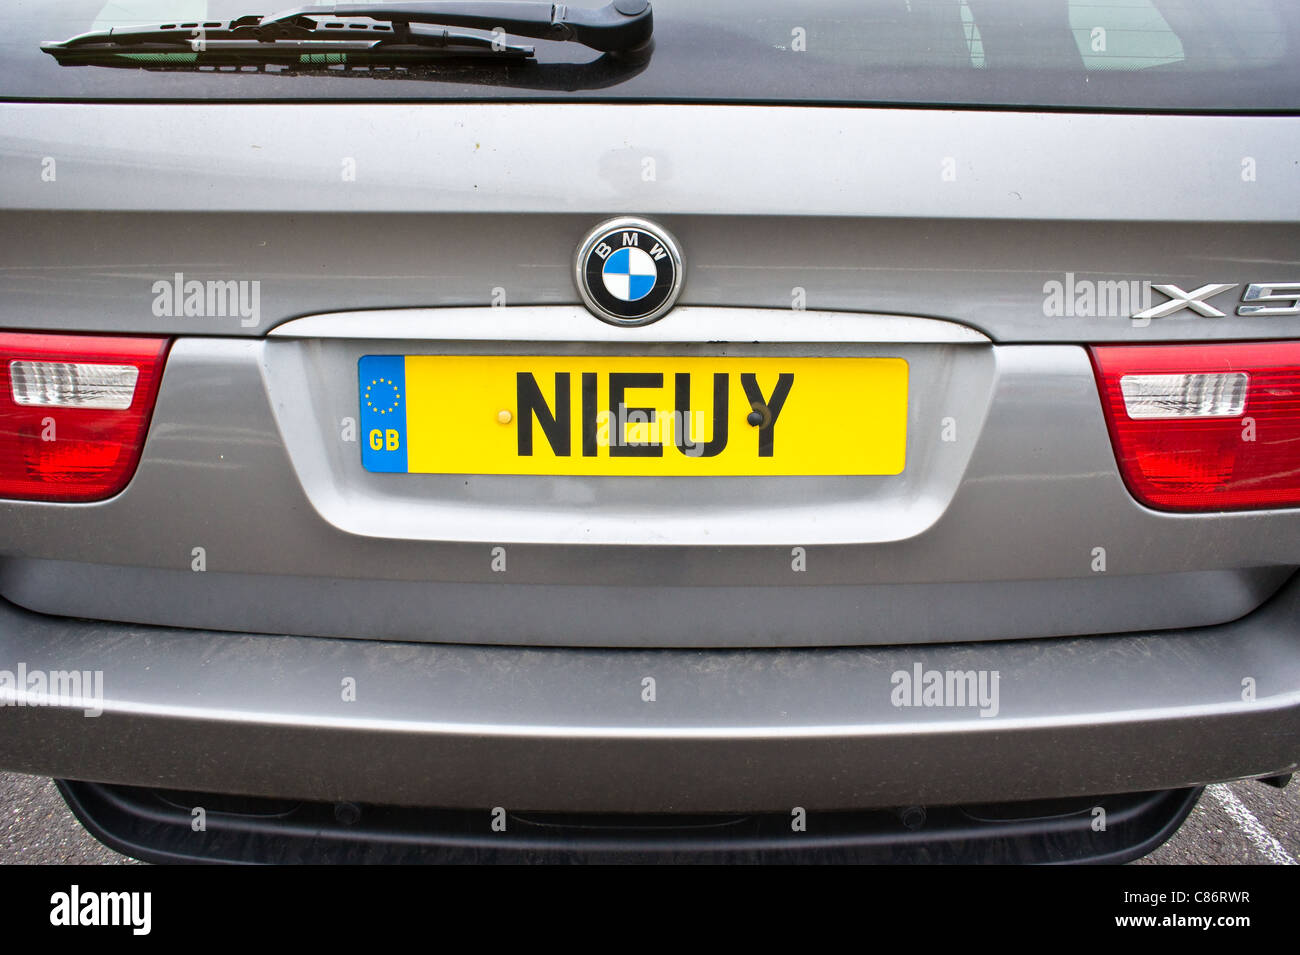 A UK car registration plate composed entirely of letters - Stock Image